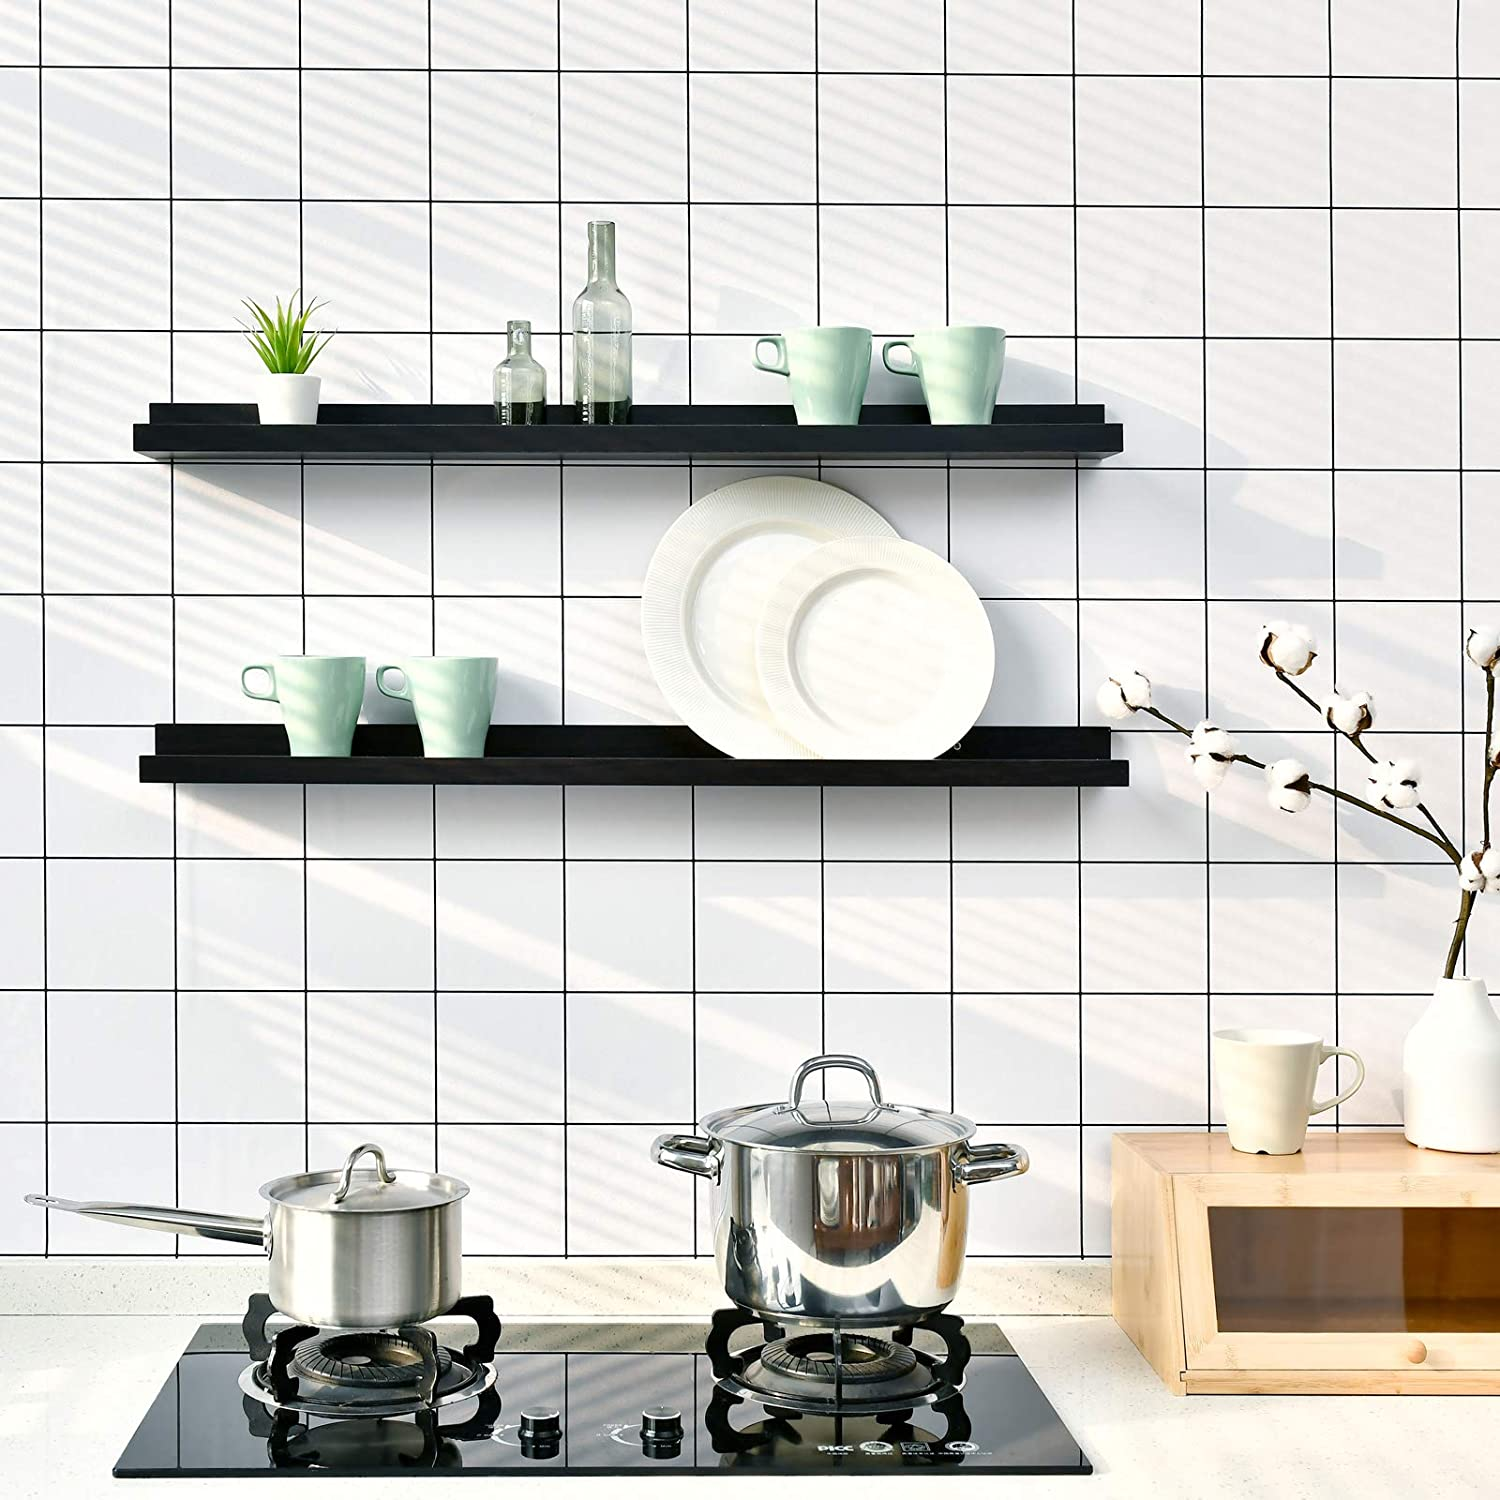 Bathroom WELLAND Espresso Picture Ledge Shelf Display Wall Shelf 36 for Bedroom Living Room Office and More Kitchen